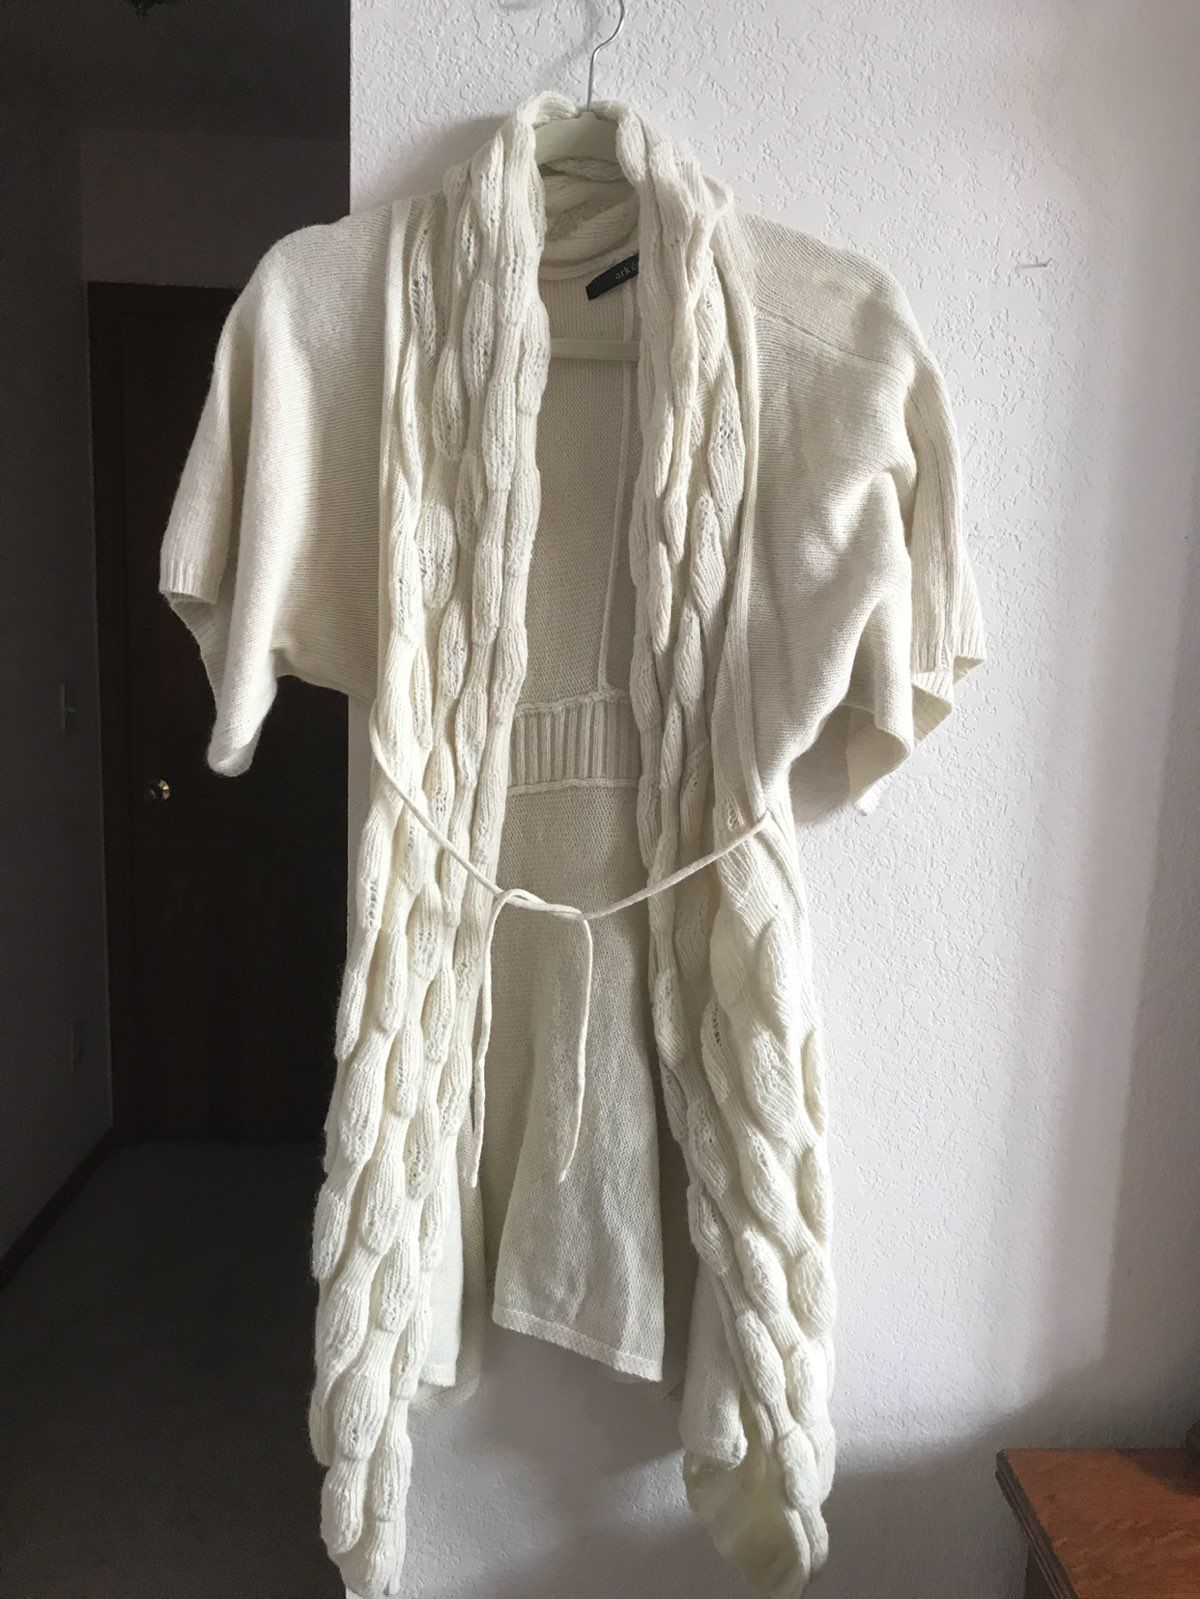 PART WOOL LONG WARM CARDIGAN SWEATER - Mercari: BUY & SELL THINGS ...